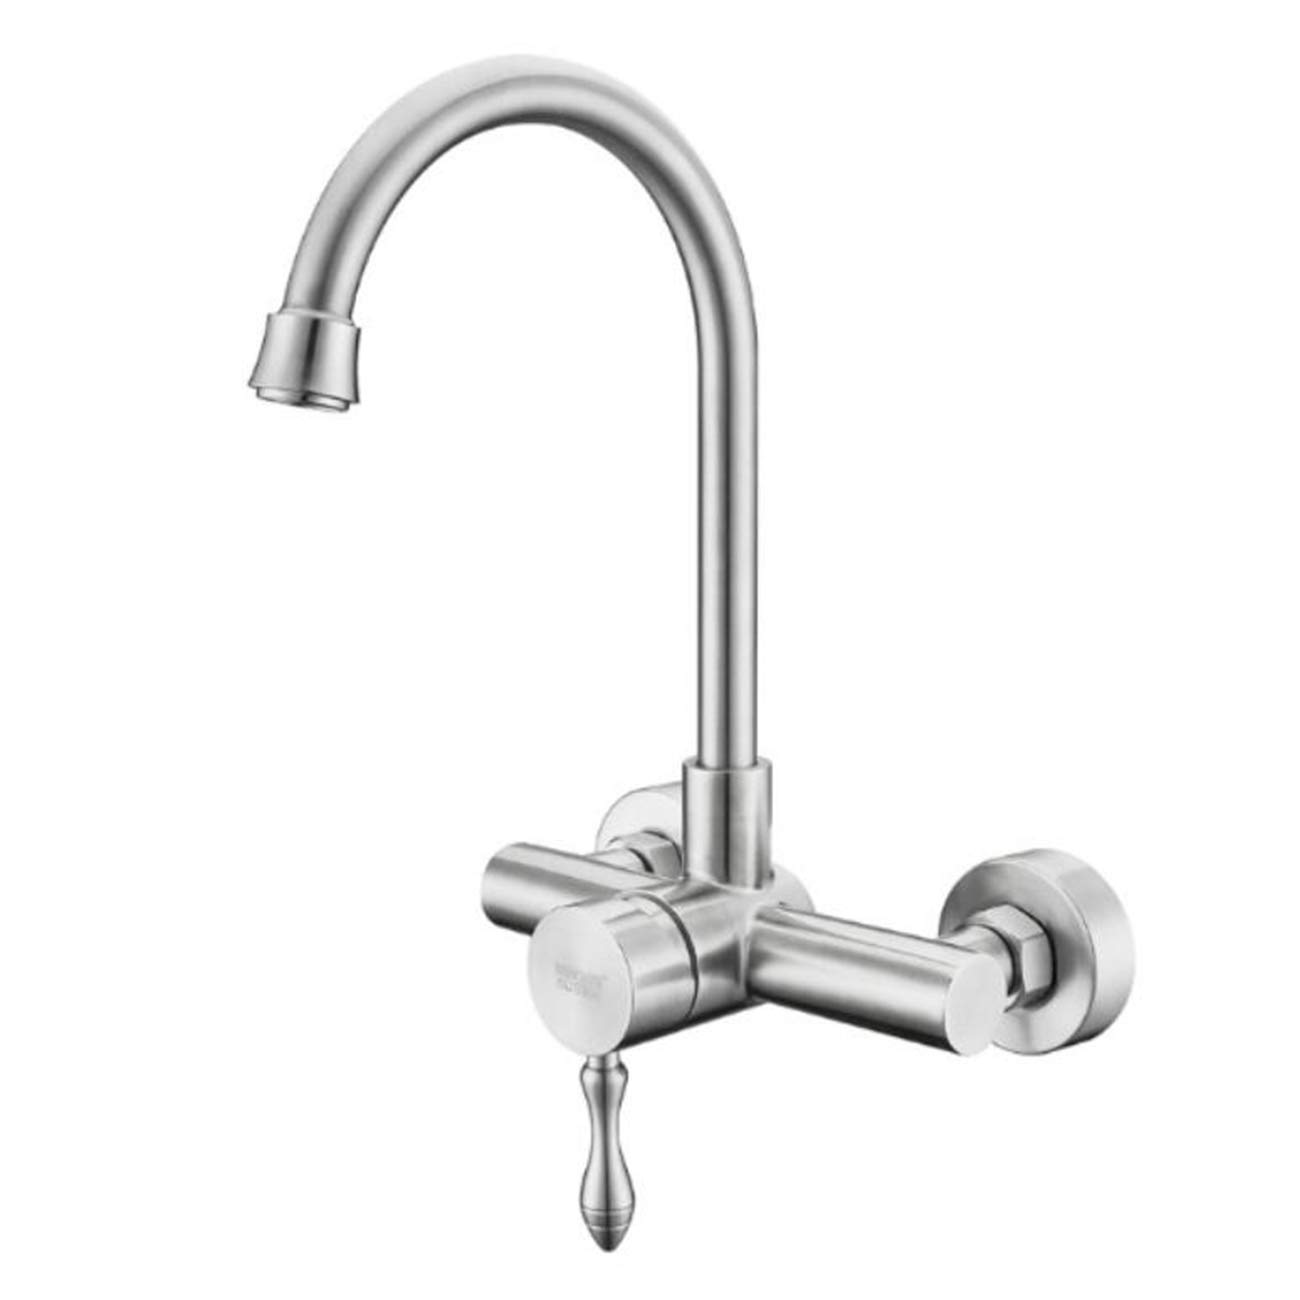 304 Stainless Steel Into Wall Kitchen Cold Hot Water Faucet Wash Basin Water Trough Washing Pool Balcony Rotatable Tap,C